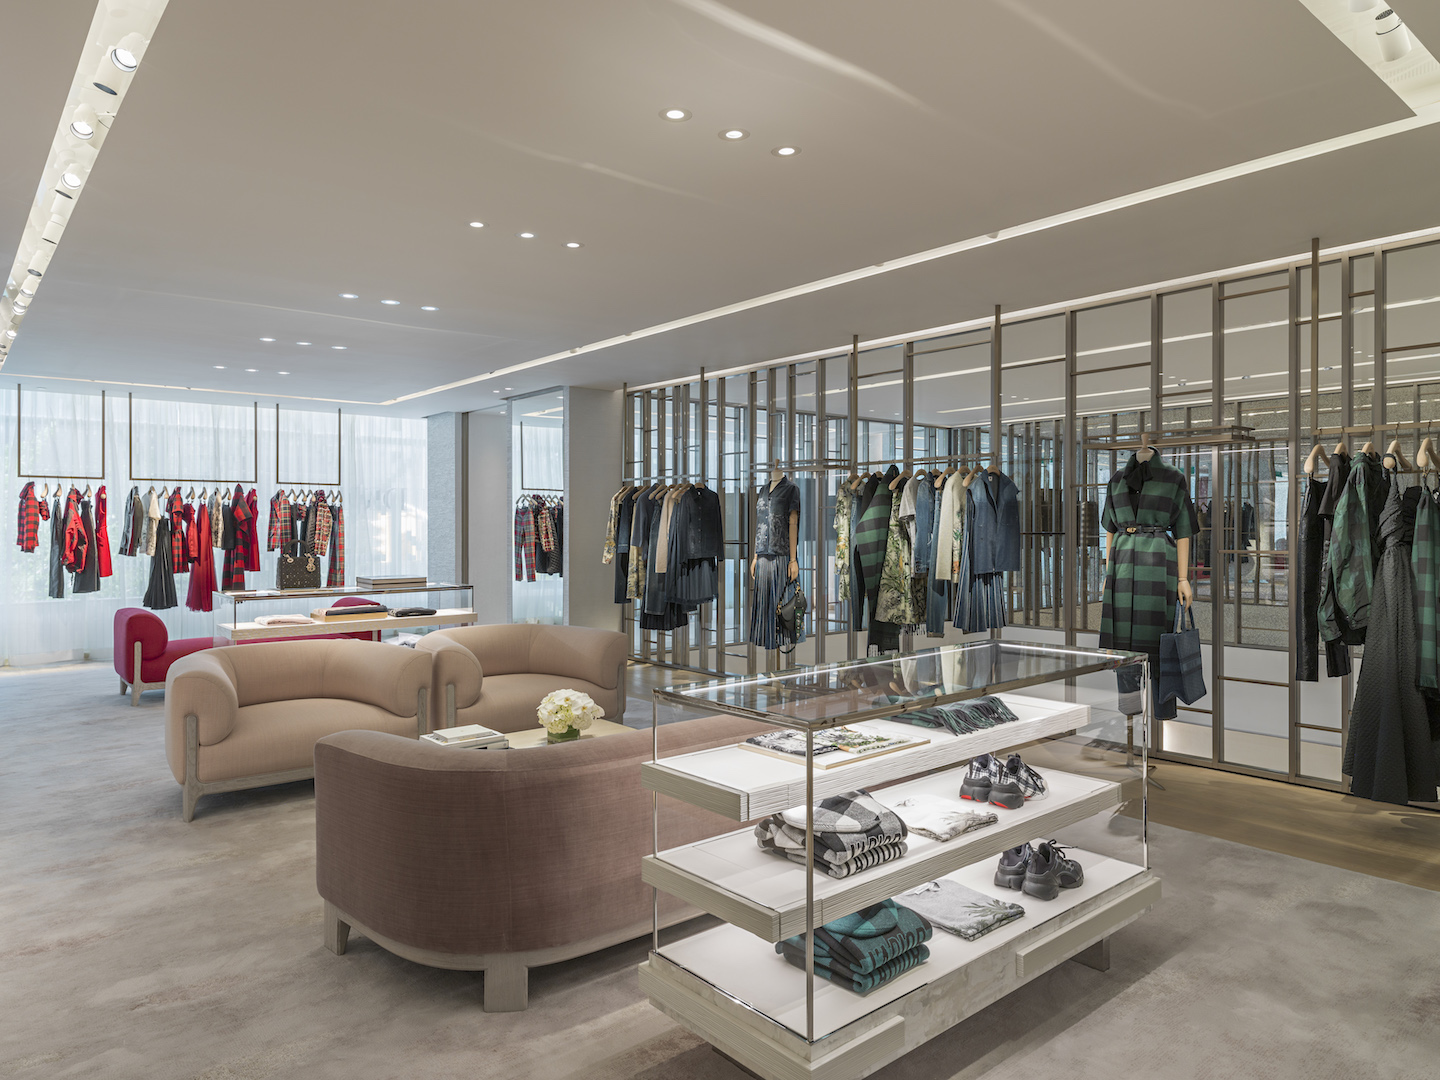 Dior flagship store in Toronto